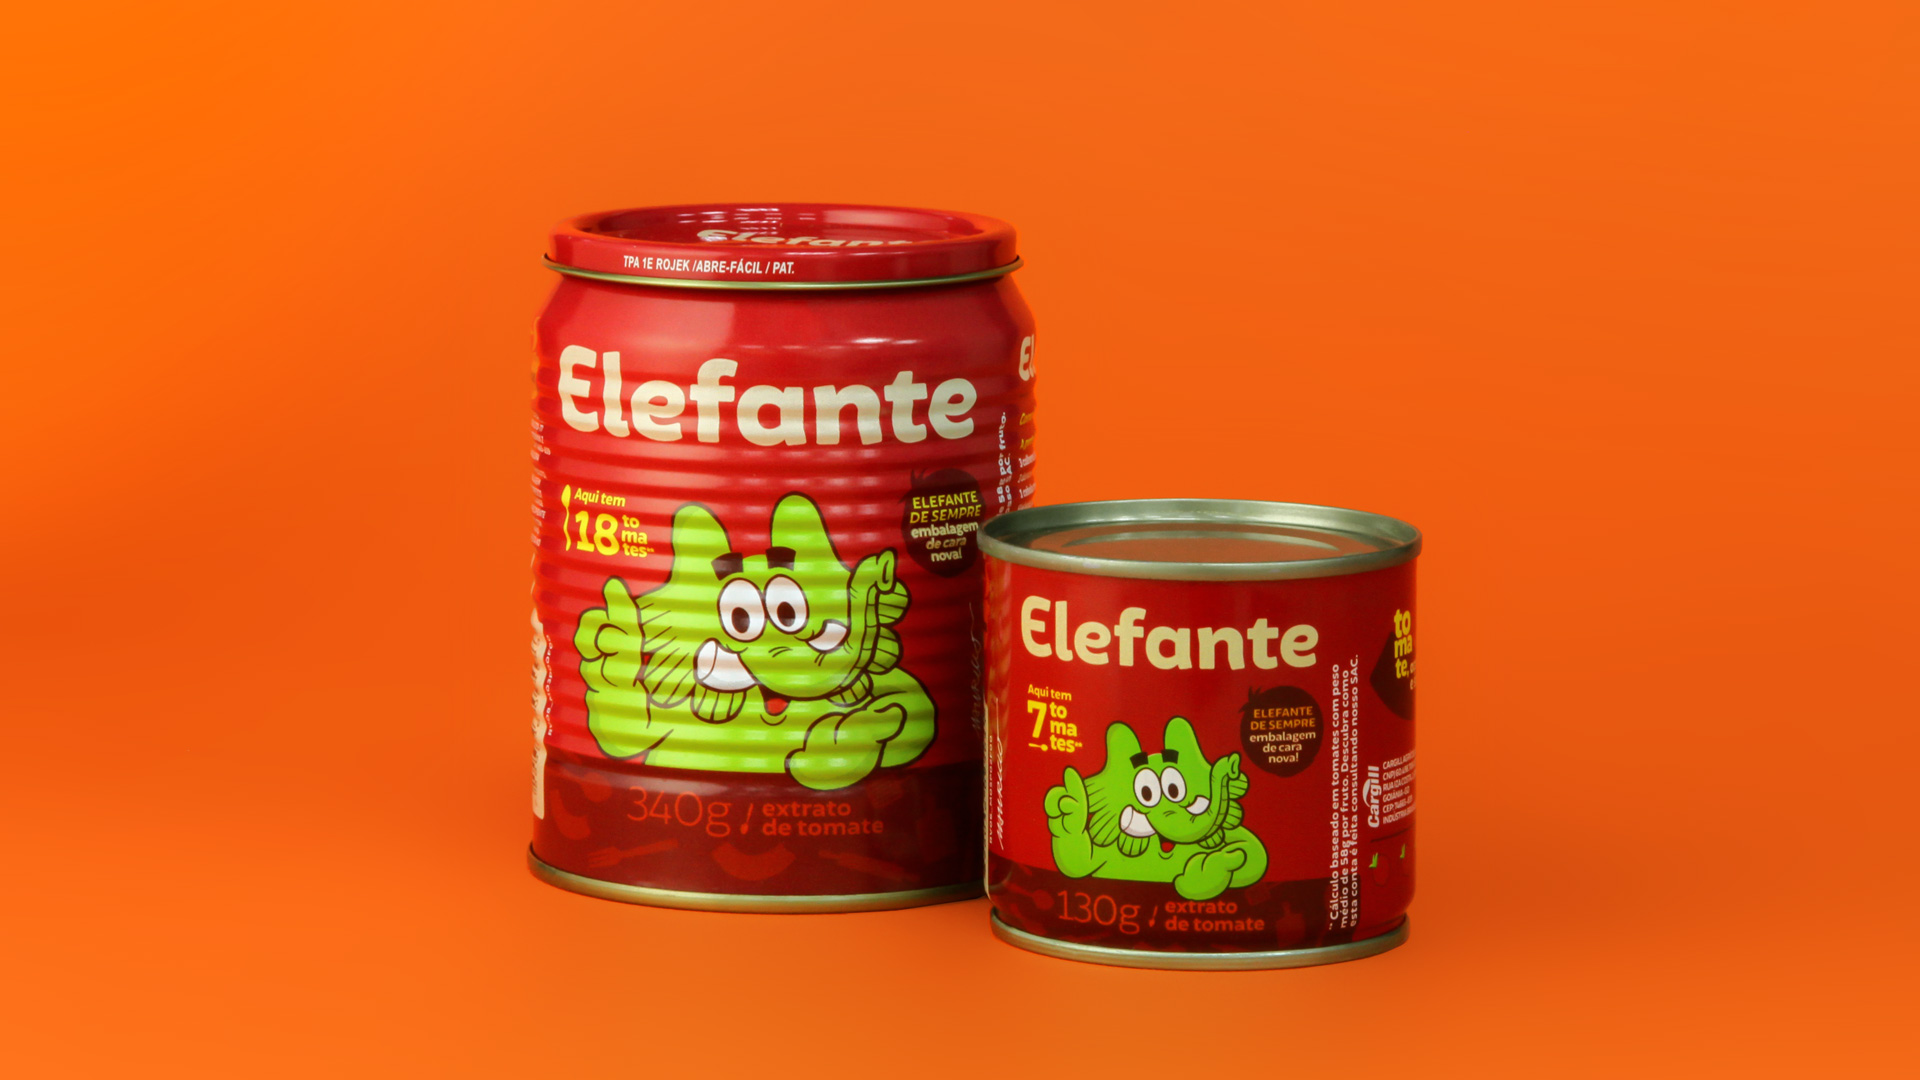 New Logo, Identity, and Packaging for Elefante by Interbrand